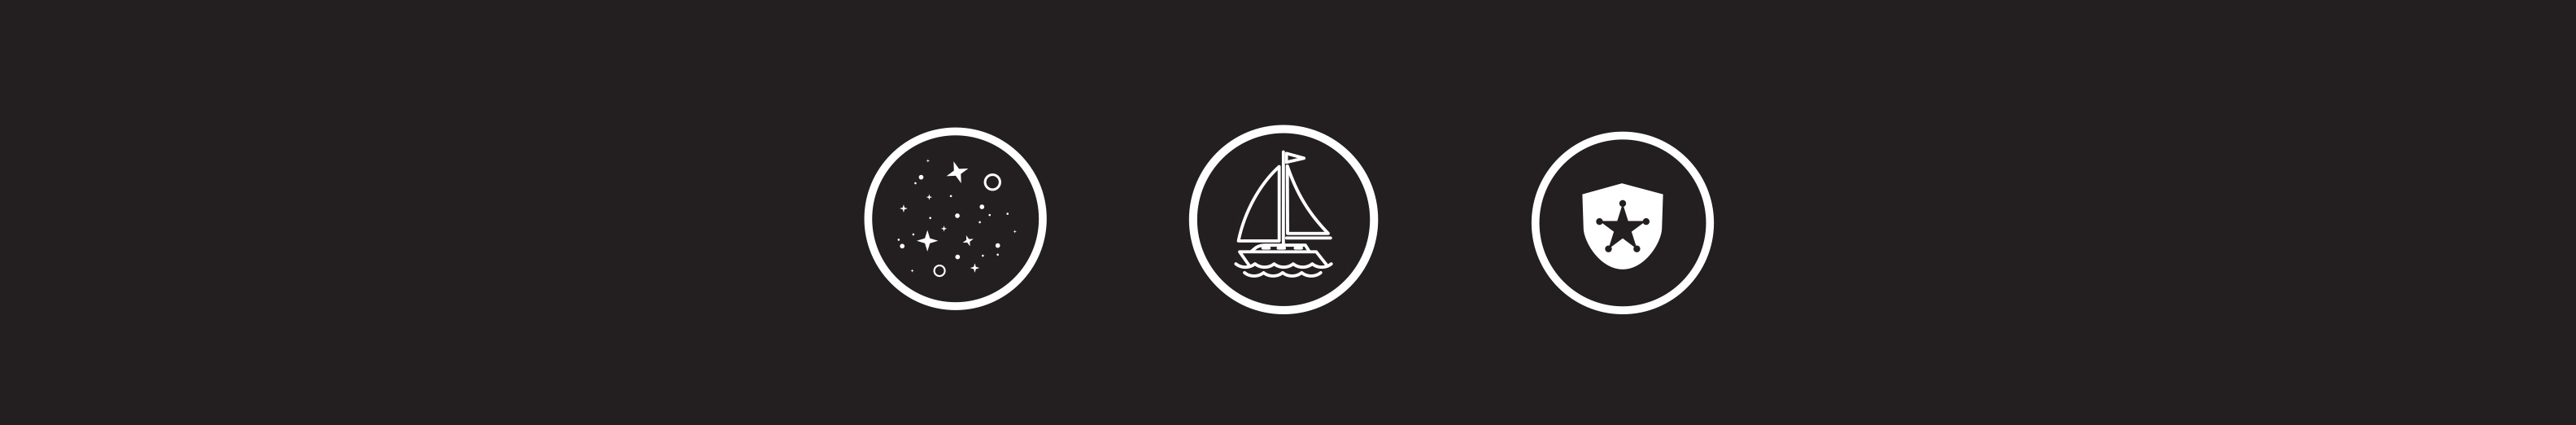 icons of stars, boat and shield with star